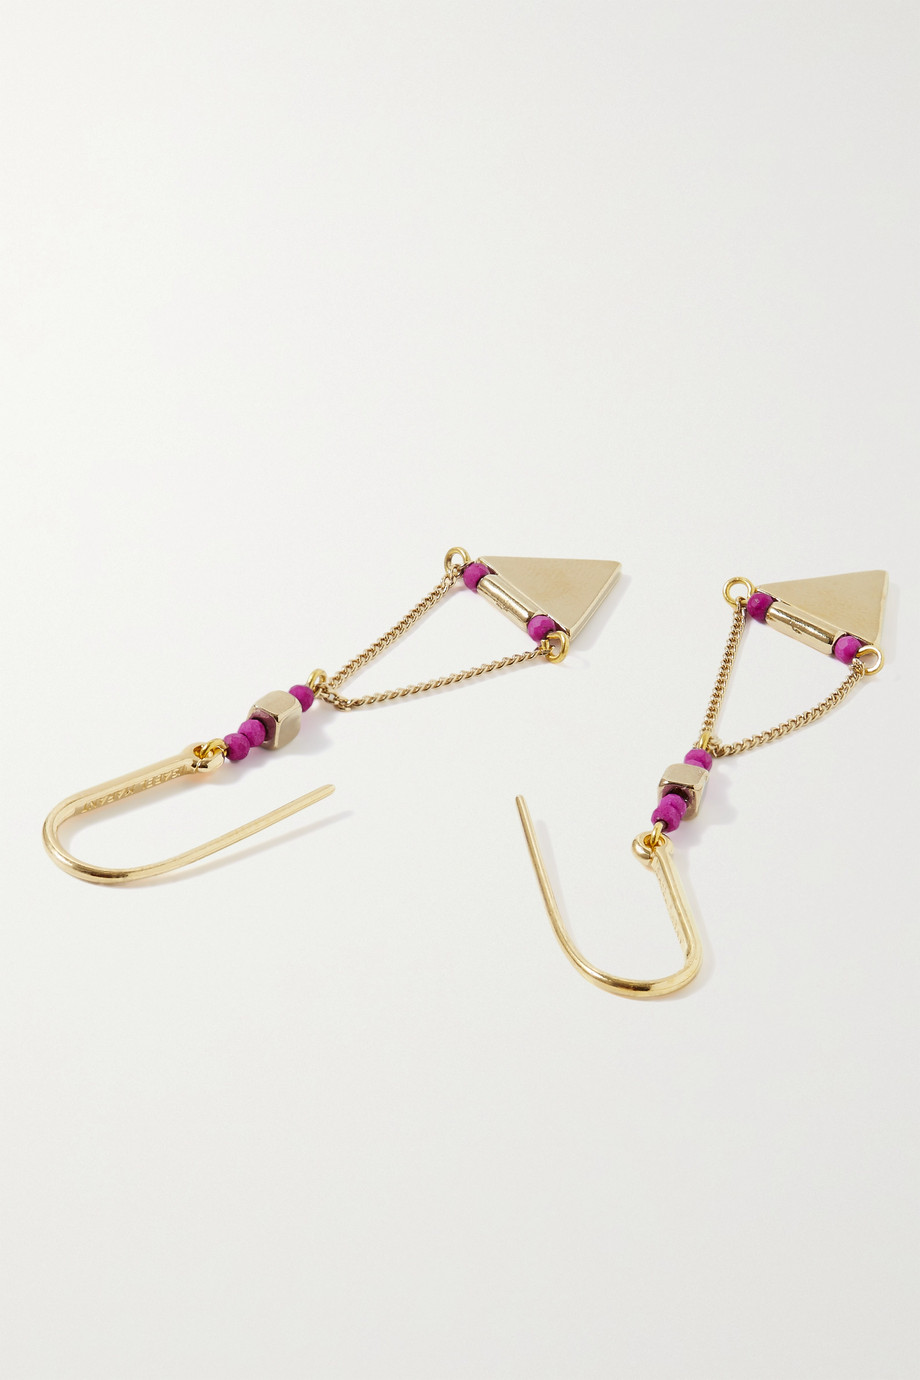 Isabel Marant Rocio gold-tone and bead earrings